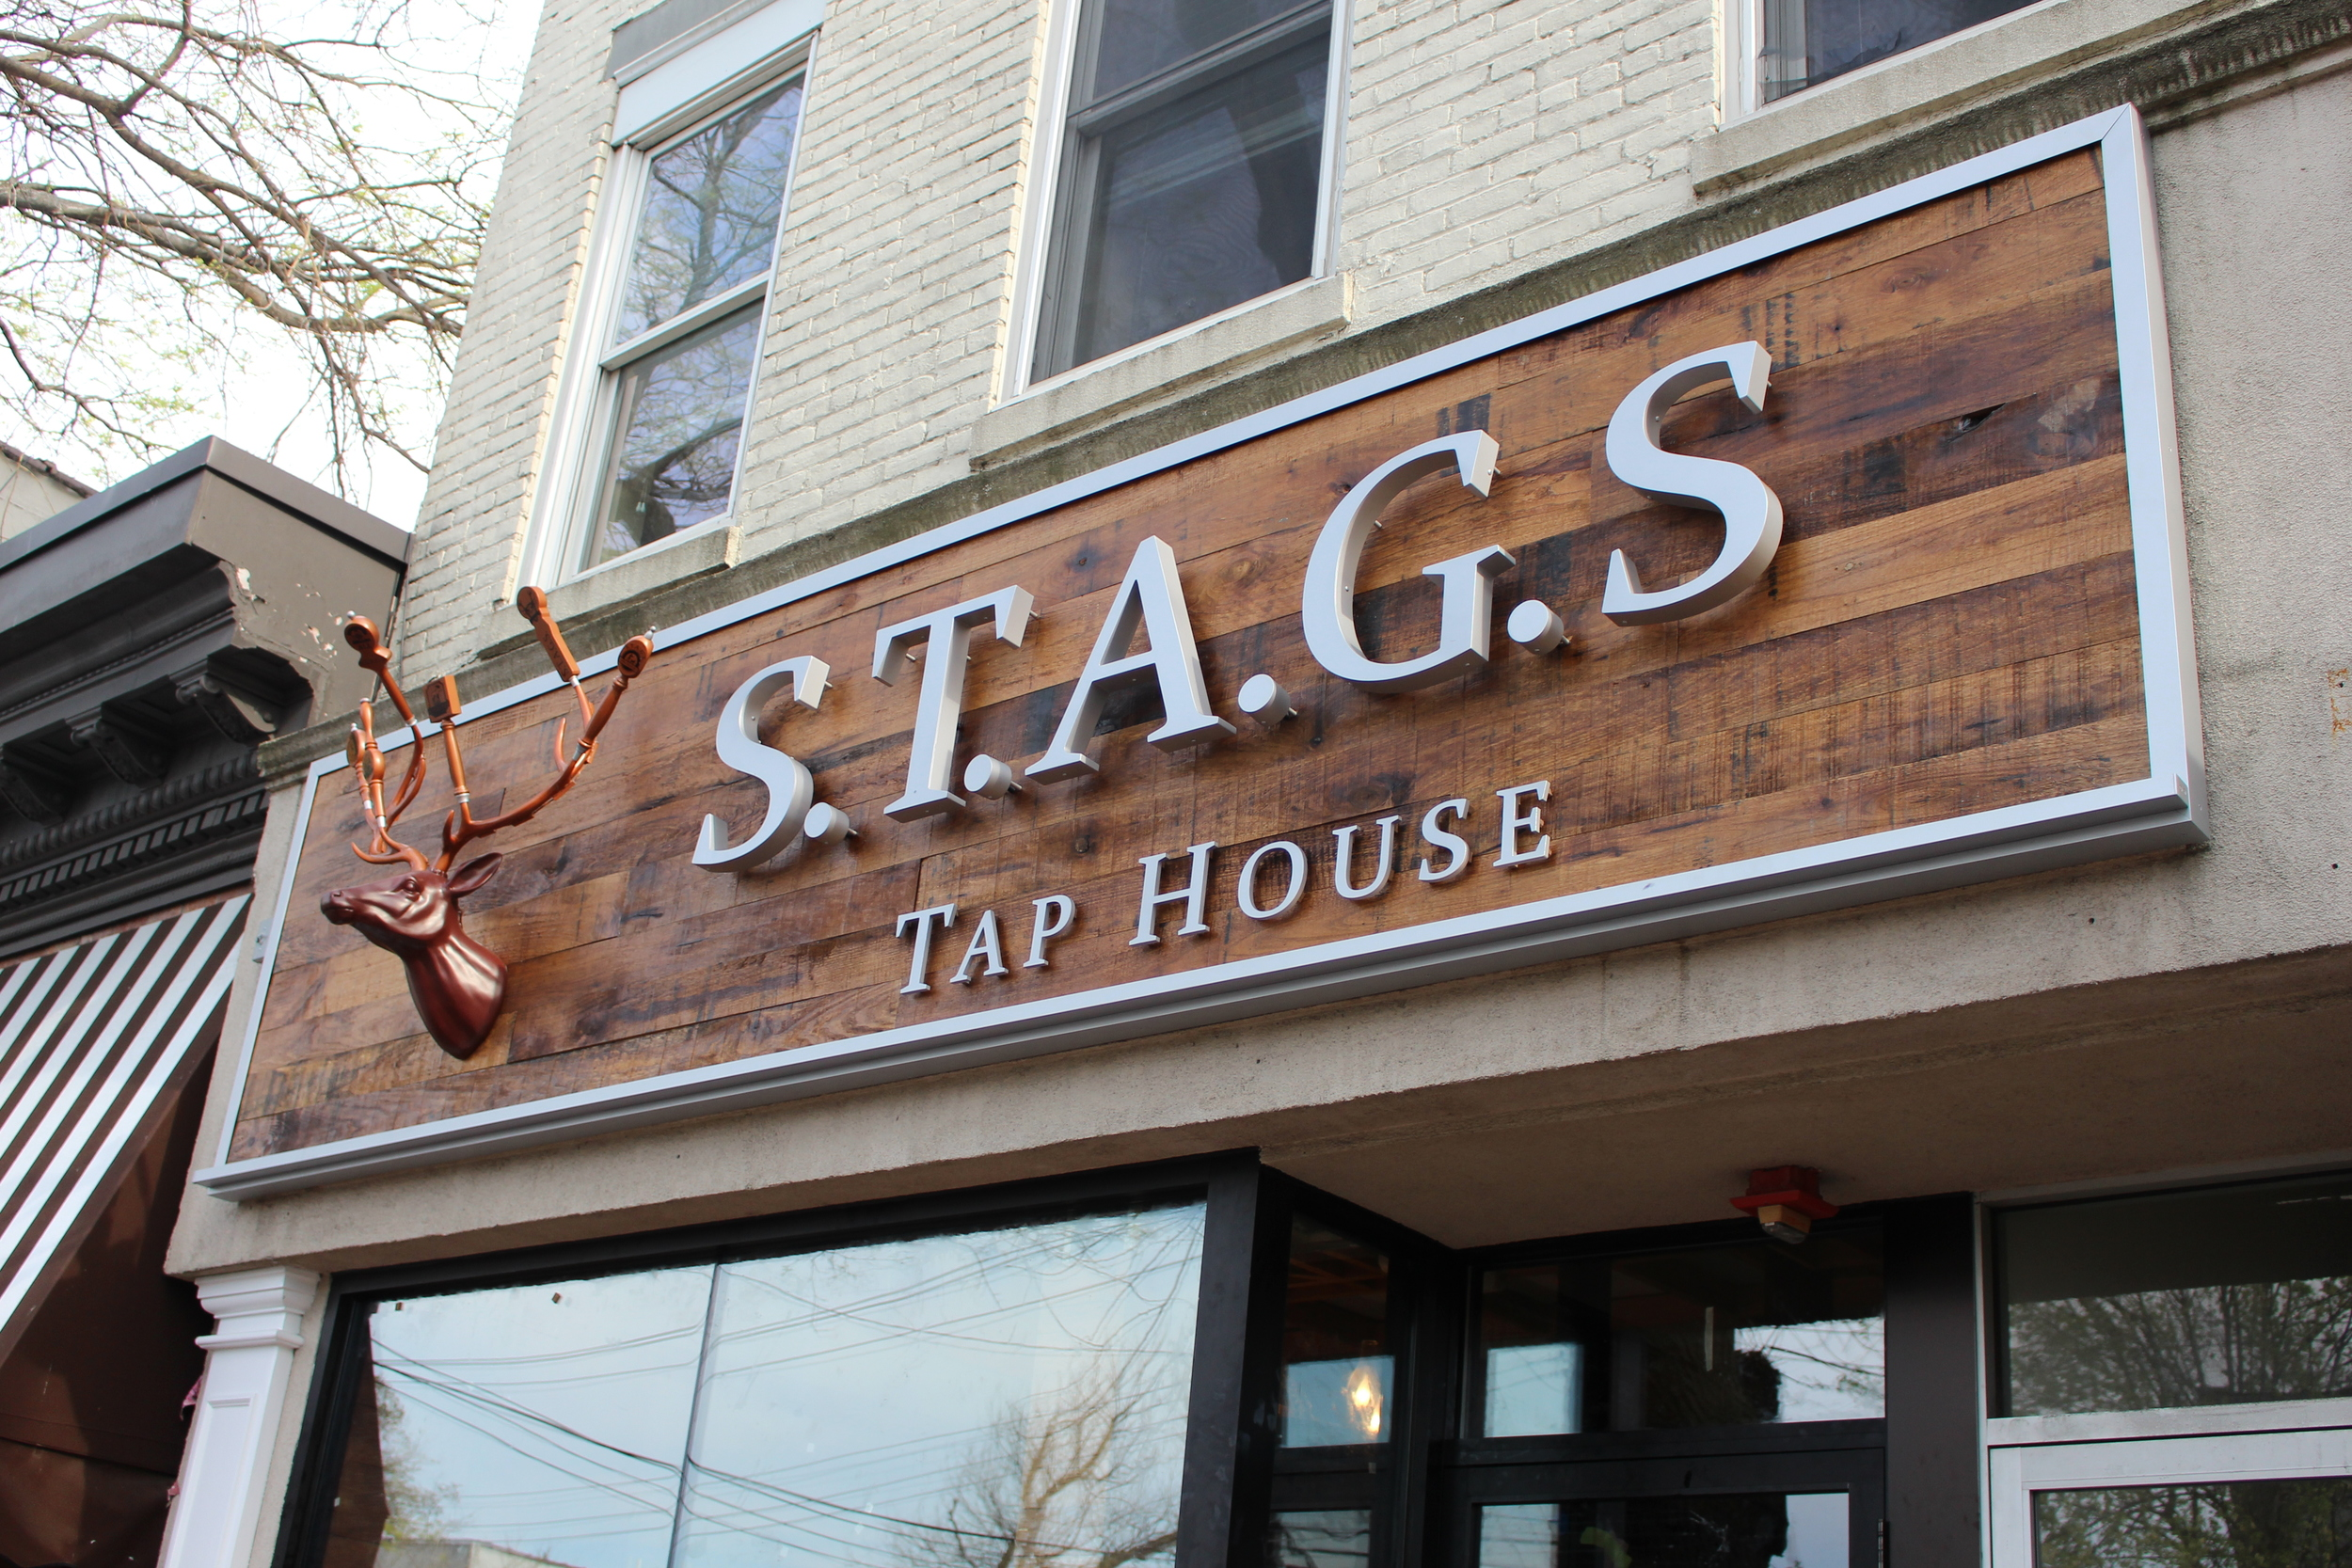 The newly-installed marquee above soon-to-be-open S.T.A.G.S. Tap House in Huntington village was custom-made by Huntington Station-based Signarama.